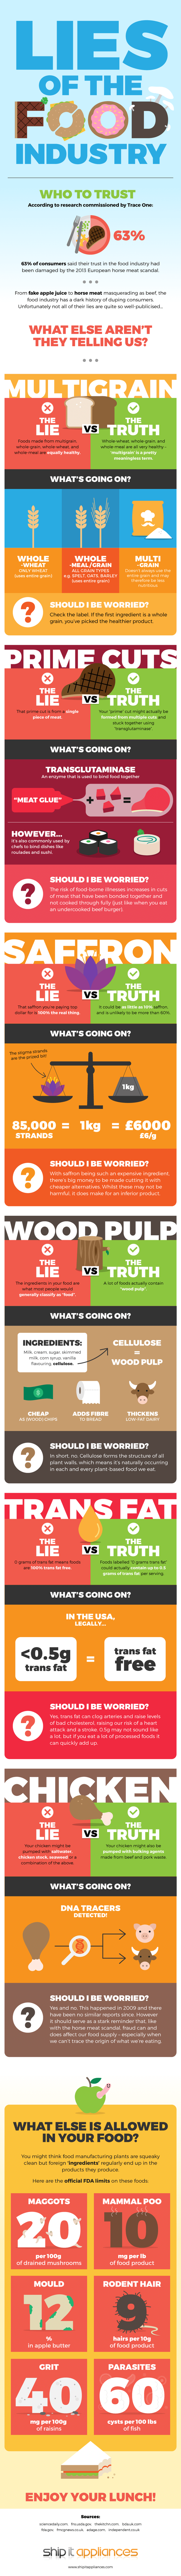 Are You Aware Of These Food Industry Lies? Infographic